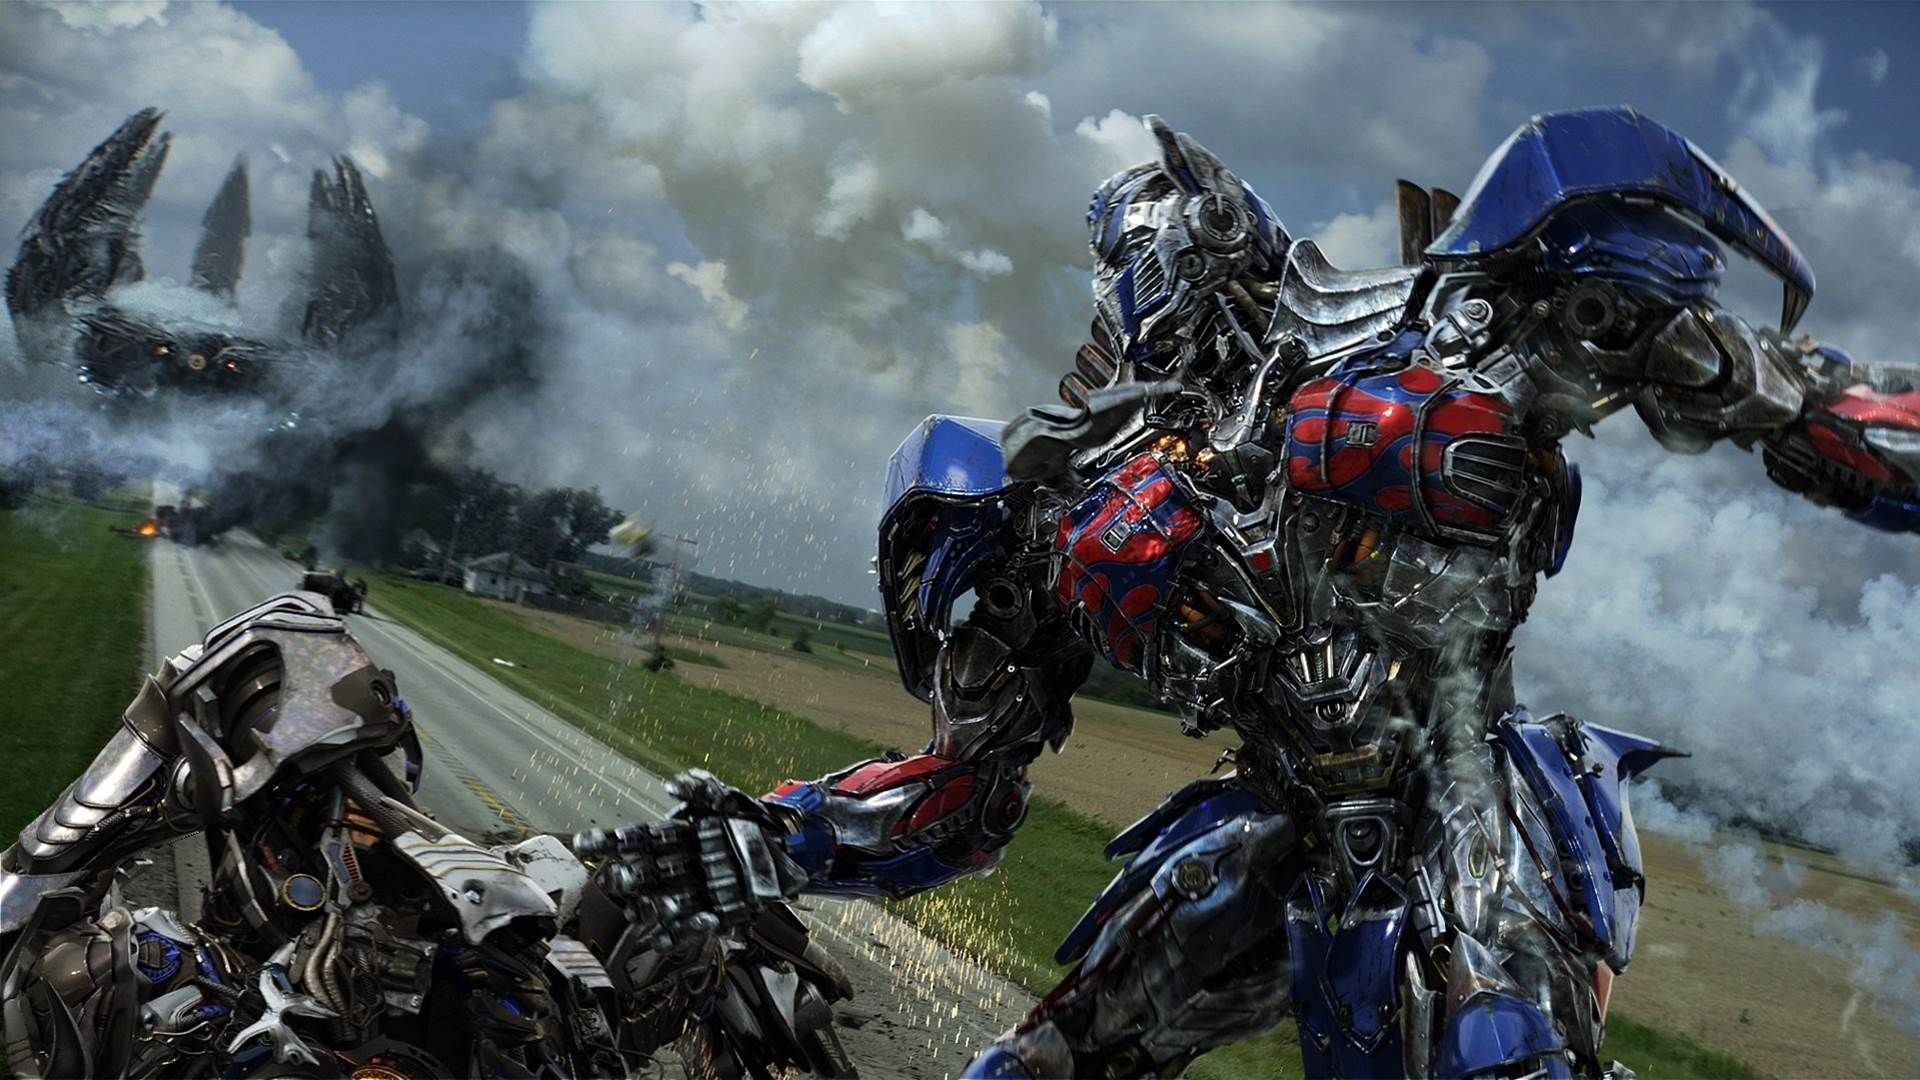 1920x1080  Stunning Optimus Prime Truck Wallpaper Hd te.org 1920×1080  Pictures Of Optimus